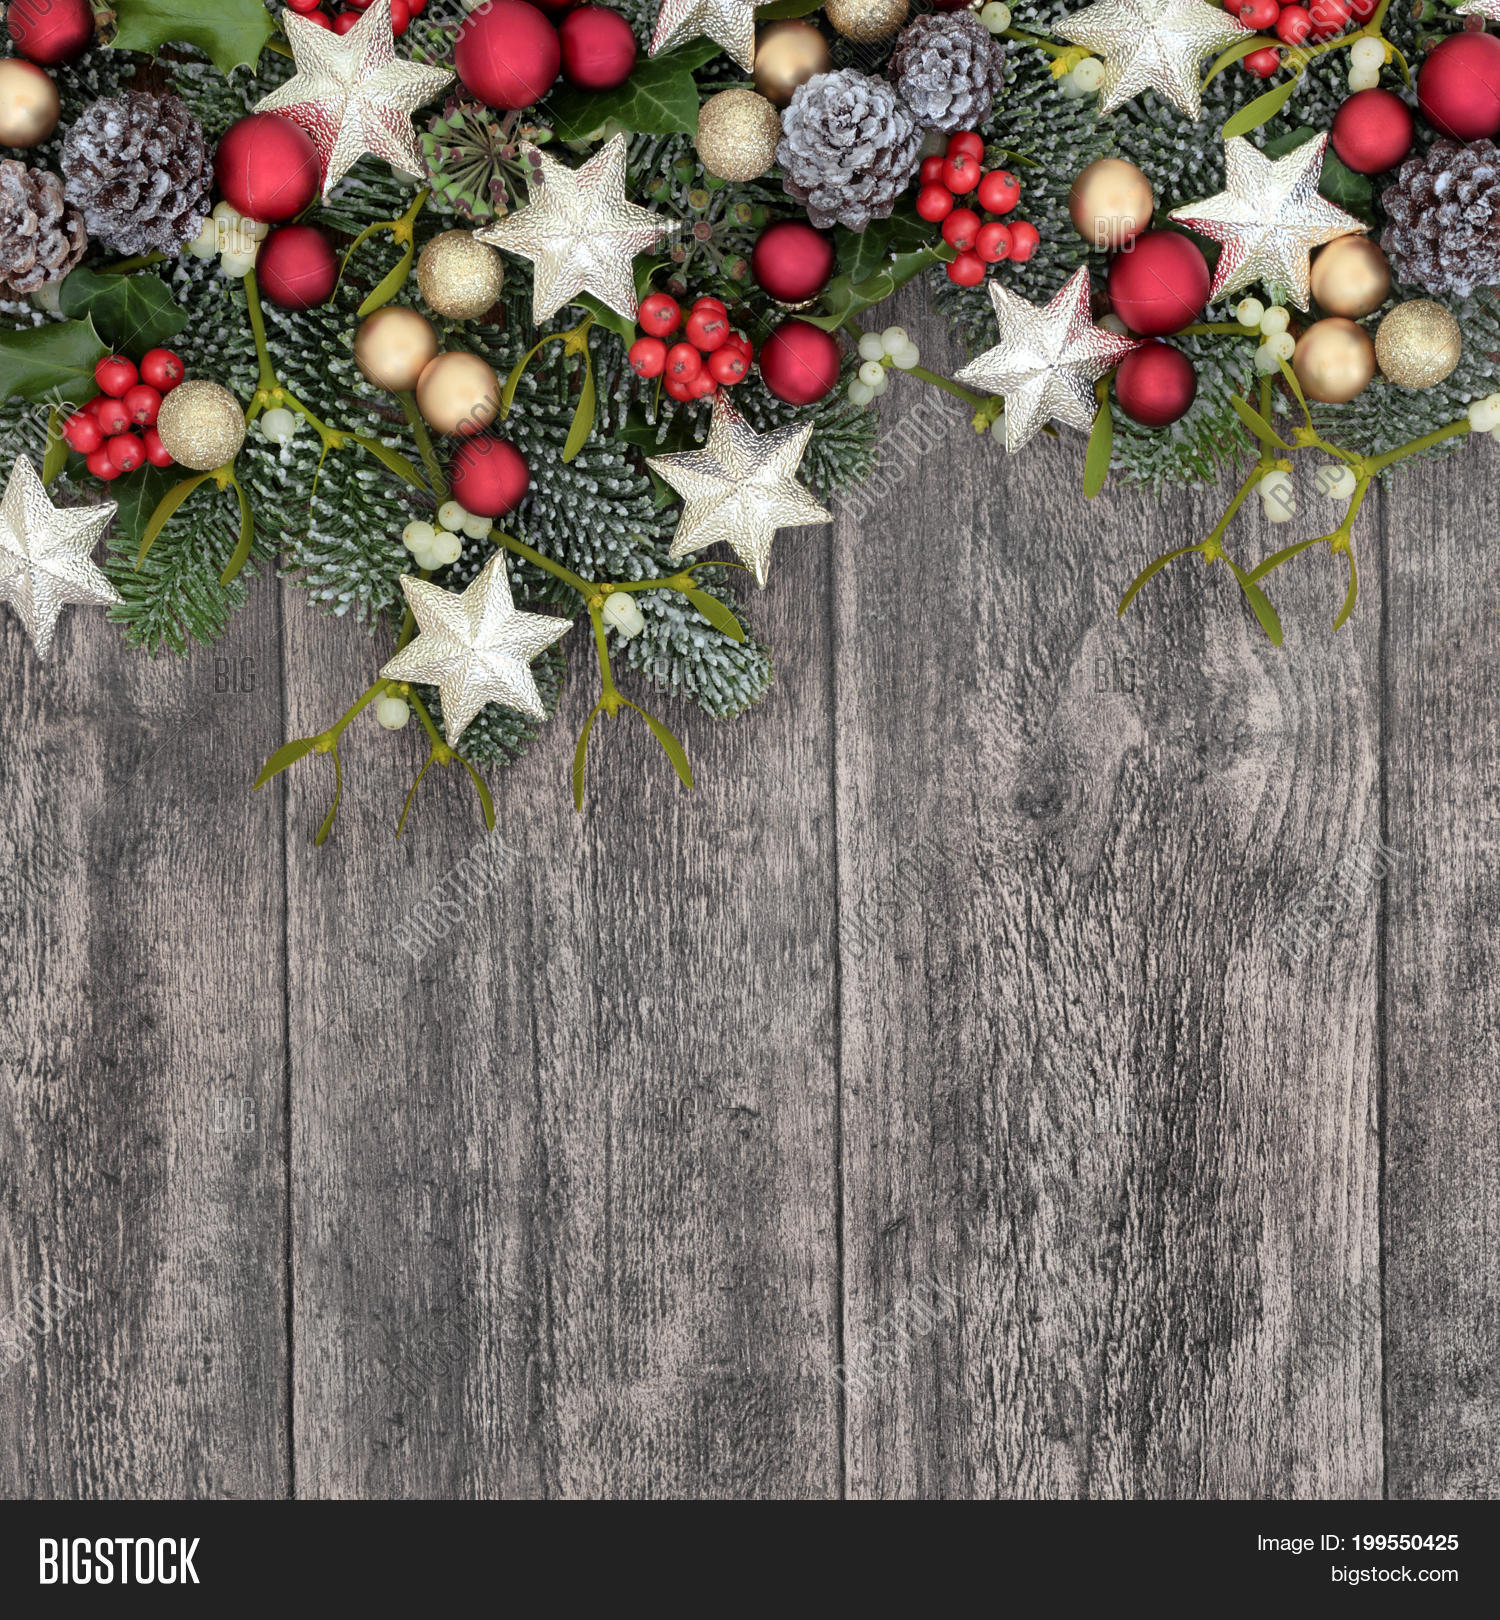 Christmas Background Free.Christmas Background Image Photo Free Trial Bigstock